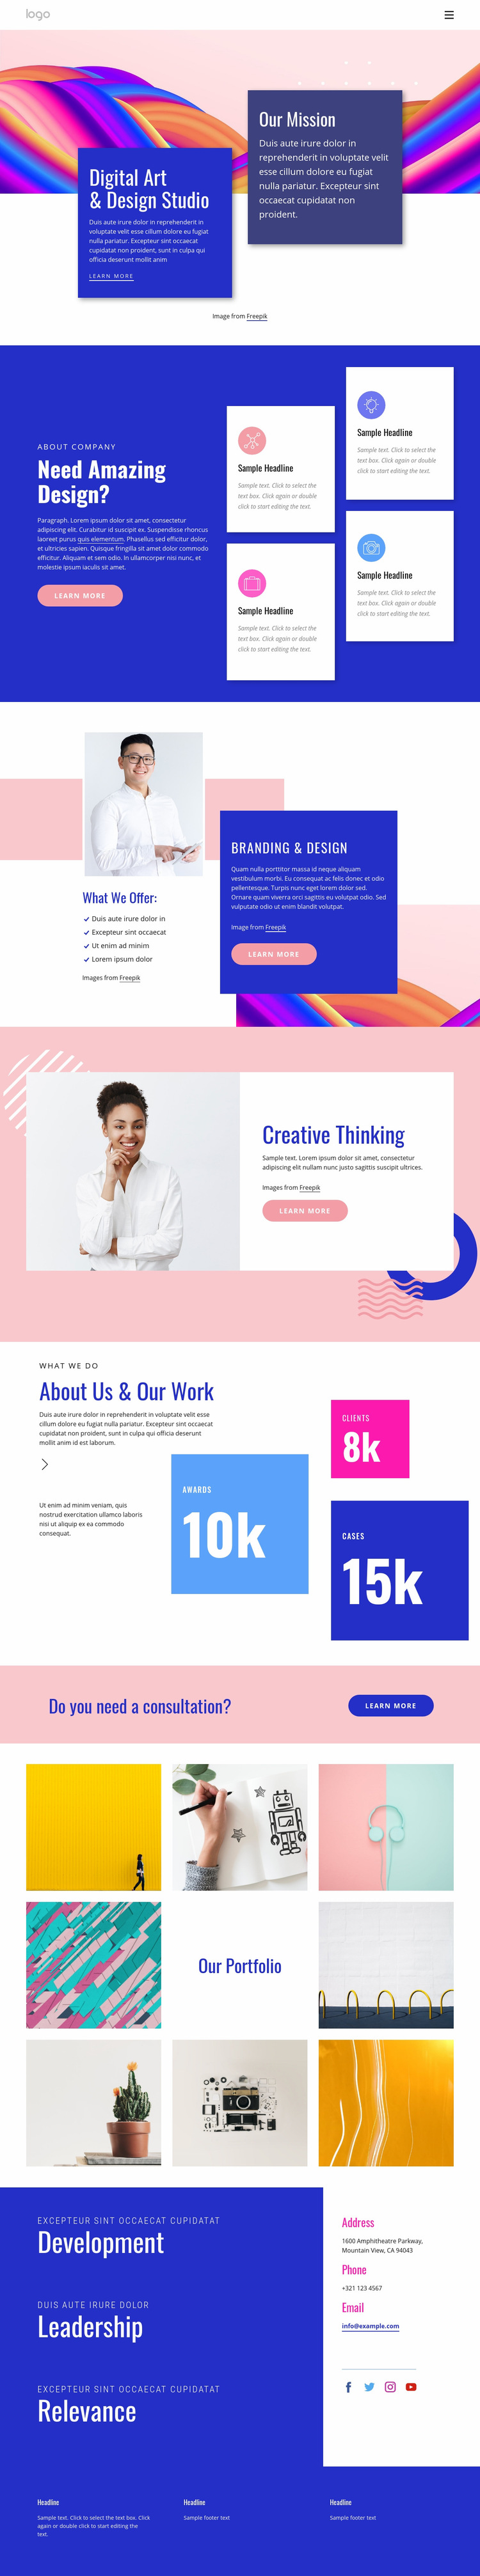 Create content that connects Web Page Design